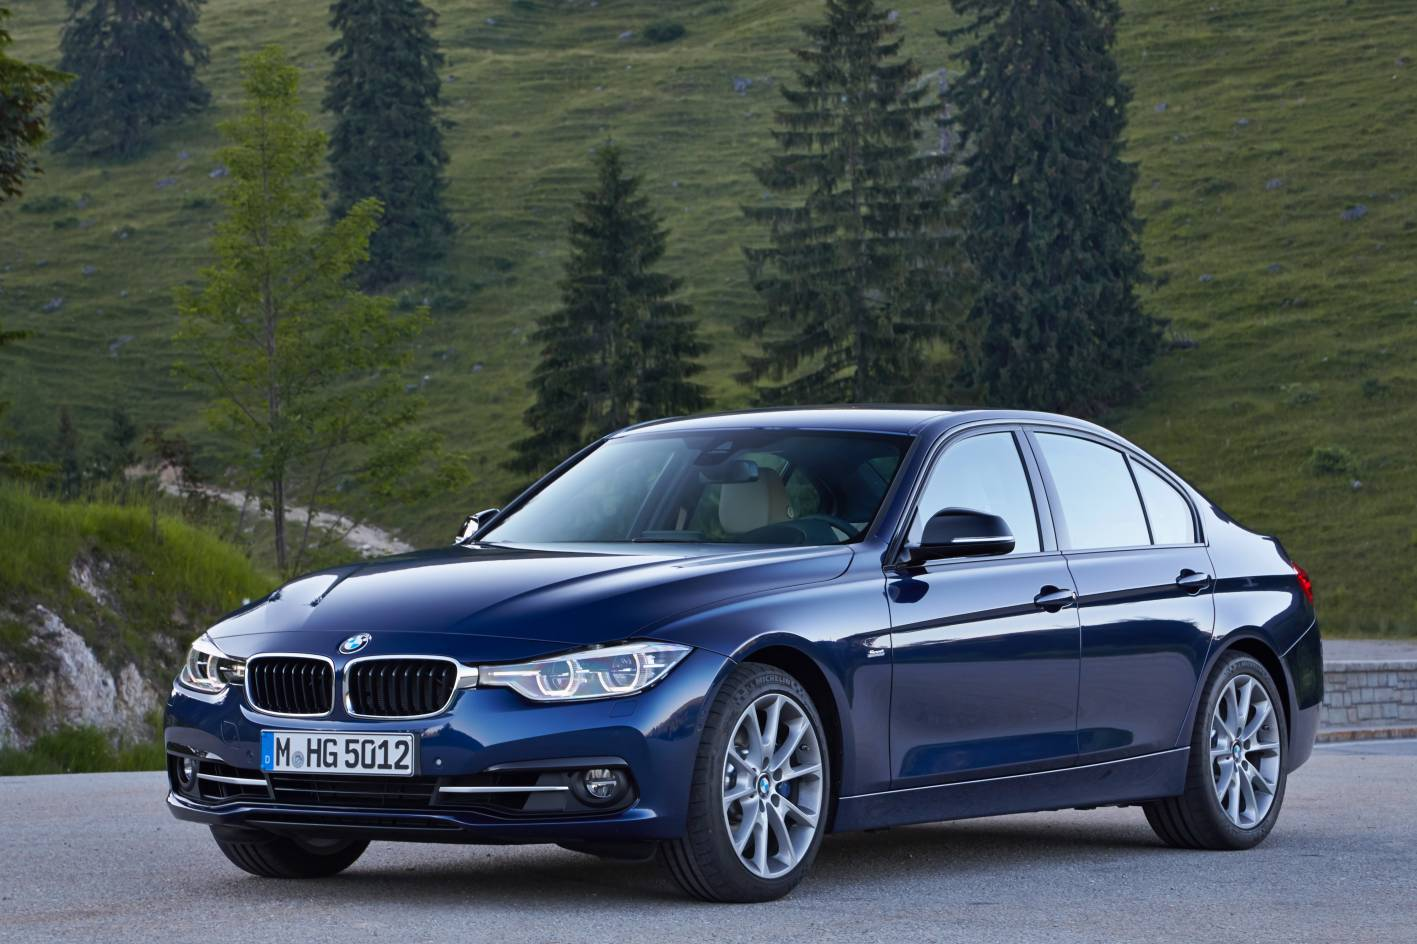 2016 Bmw 3 Series Facelift Front Quarter